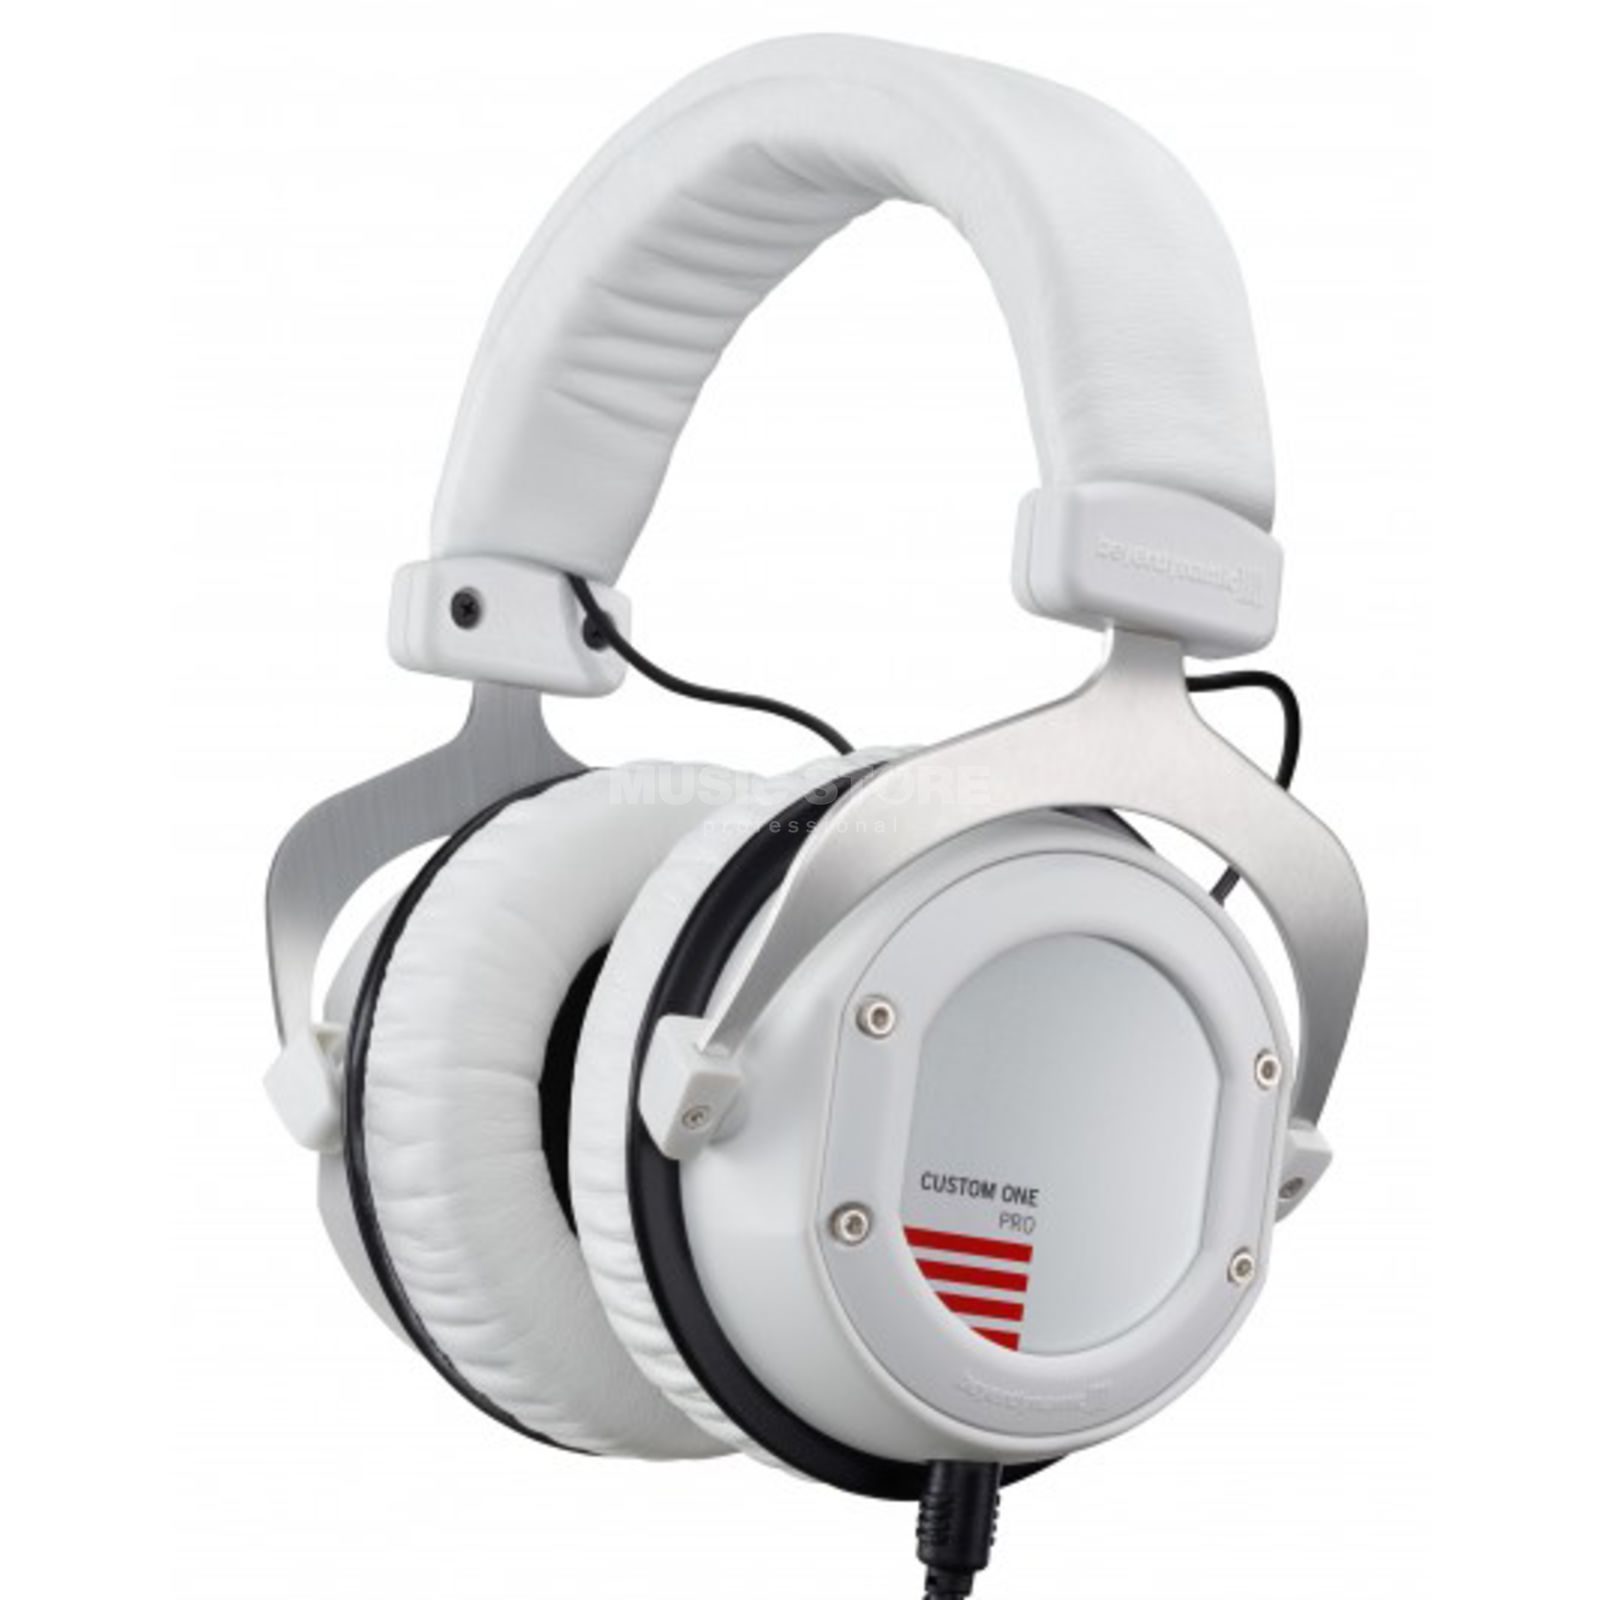 Beyerdynamic Custom One Pro Plus white weiß, 16 Ohm Produktbild